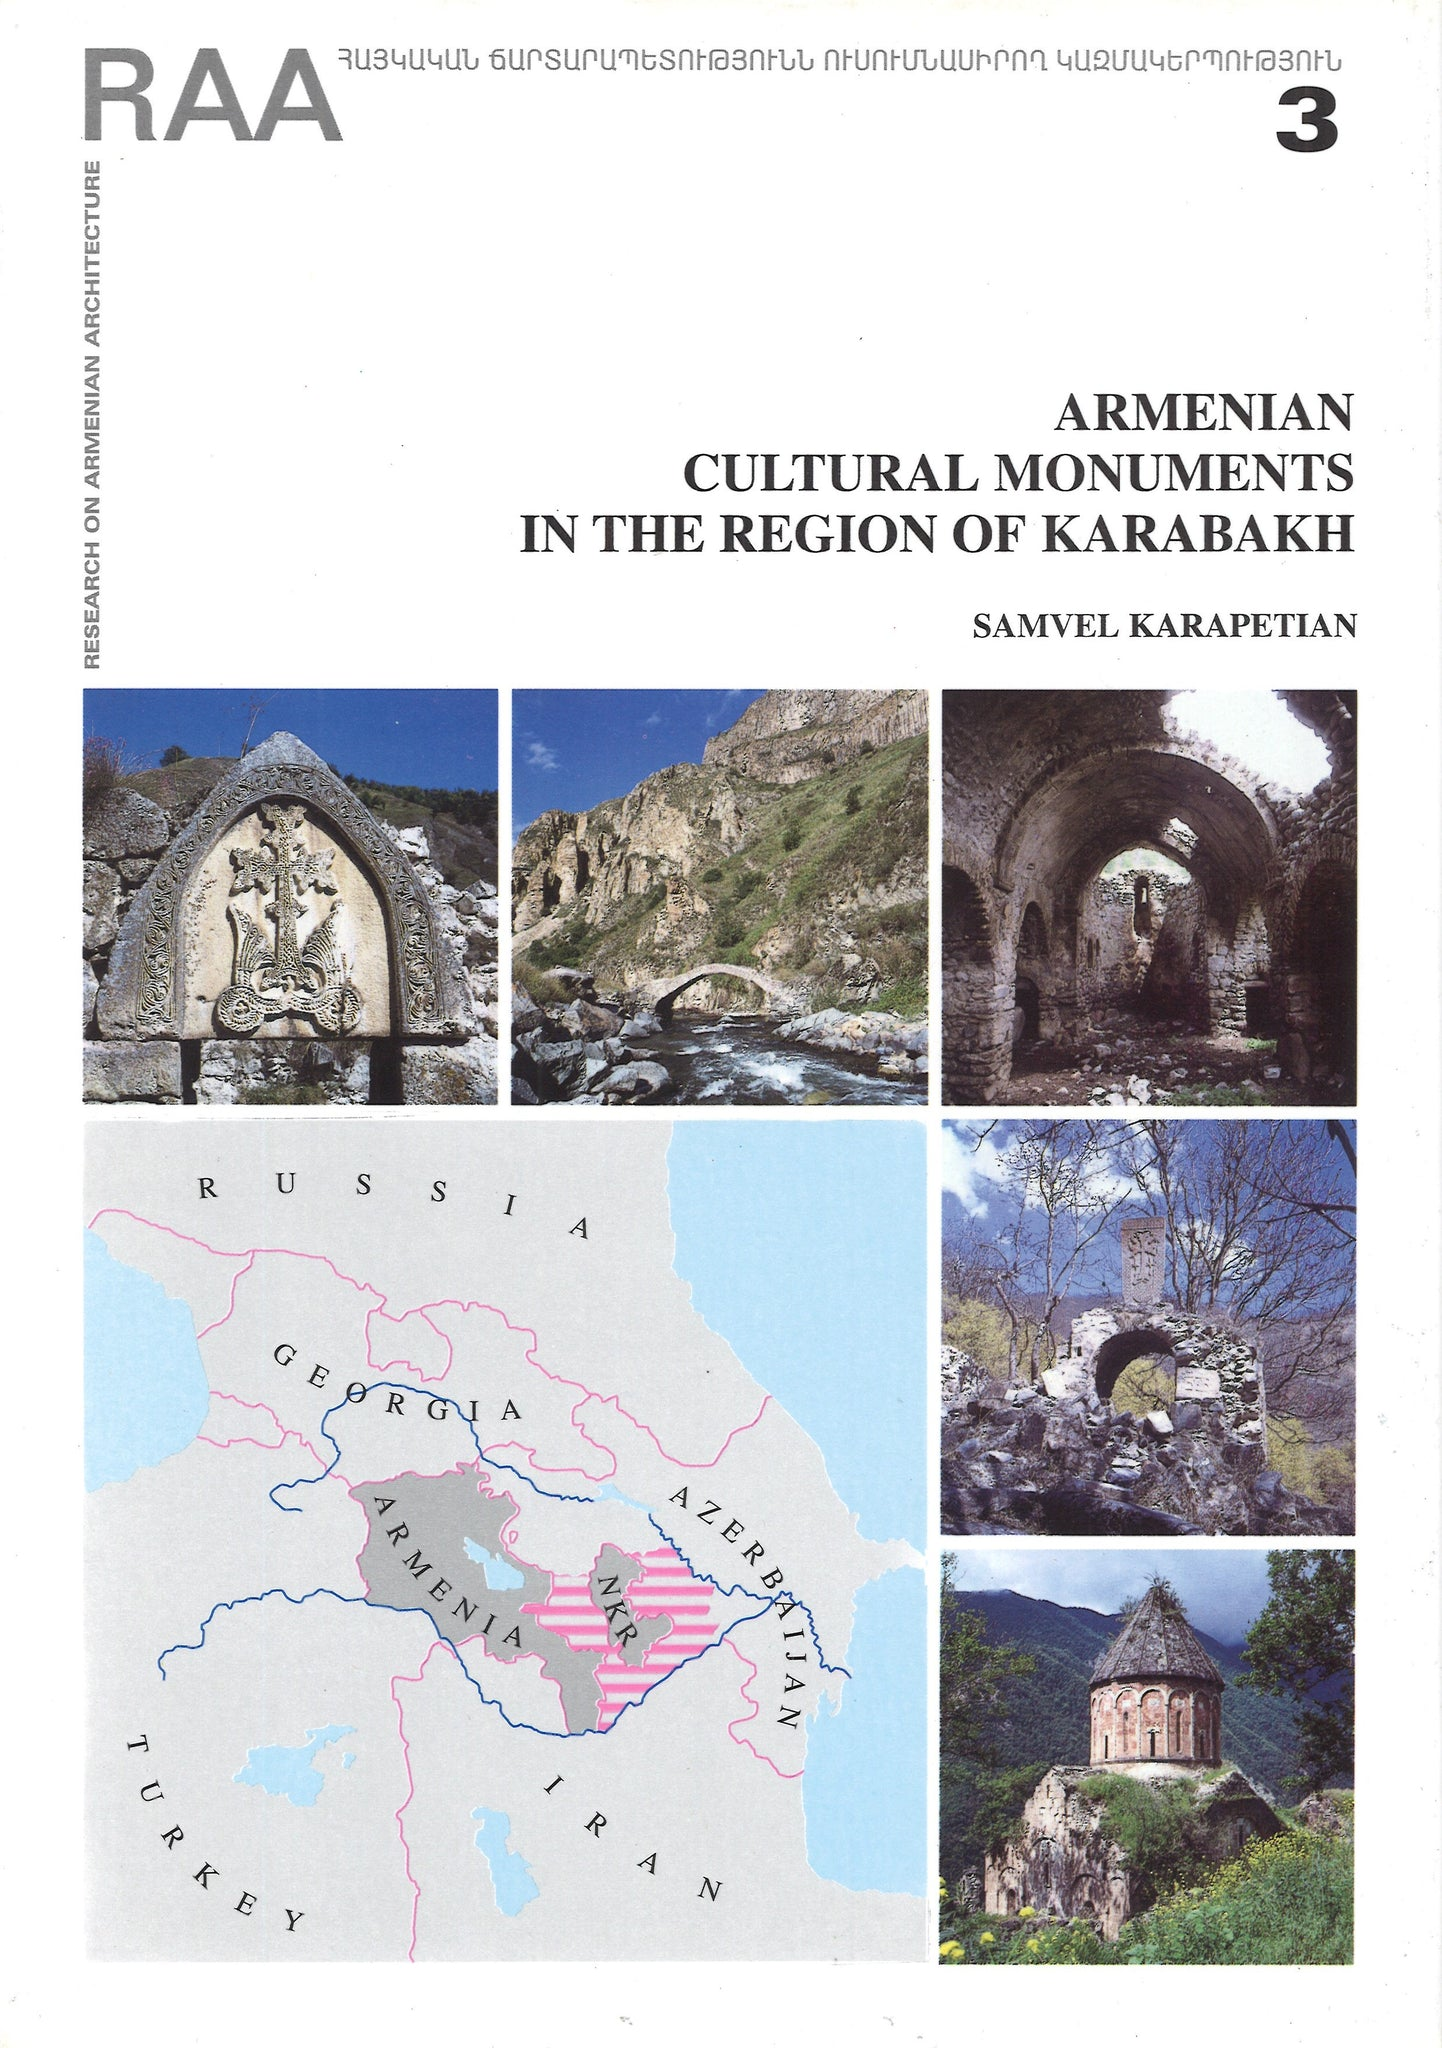 ARMENIAN CULTURAL MONUMENTS IN THE REGION OF KARABAKH